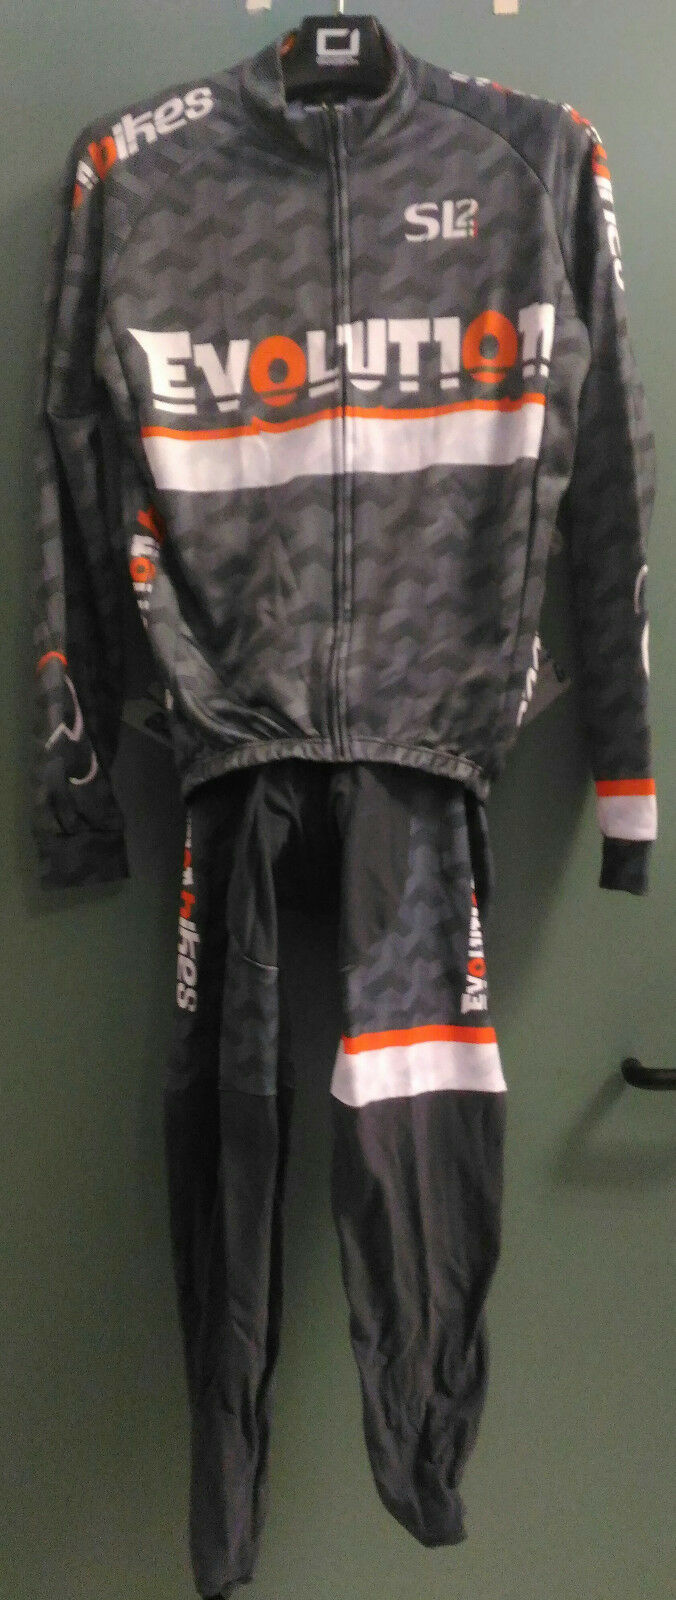 COMPLETE CYCLING WINTRY EVOLUTIONBIKES by GIANNINI colour GREY-WHITE-orange